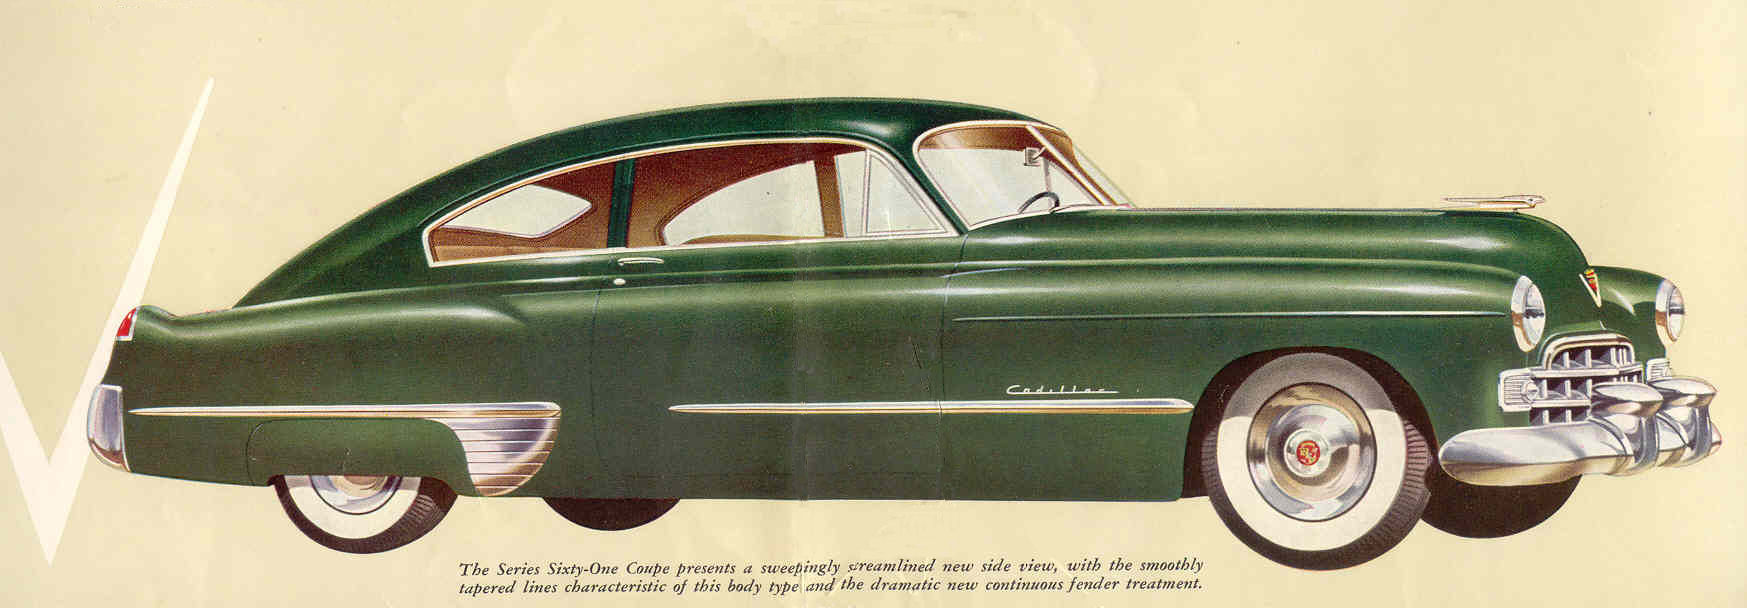 Cadillac on 1948 Lincoln Continental Wiring Diagram